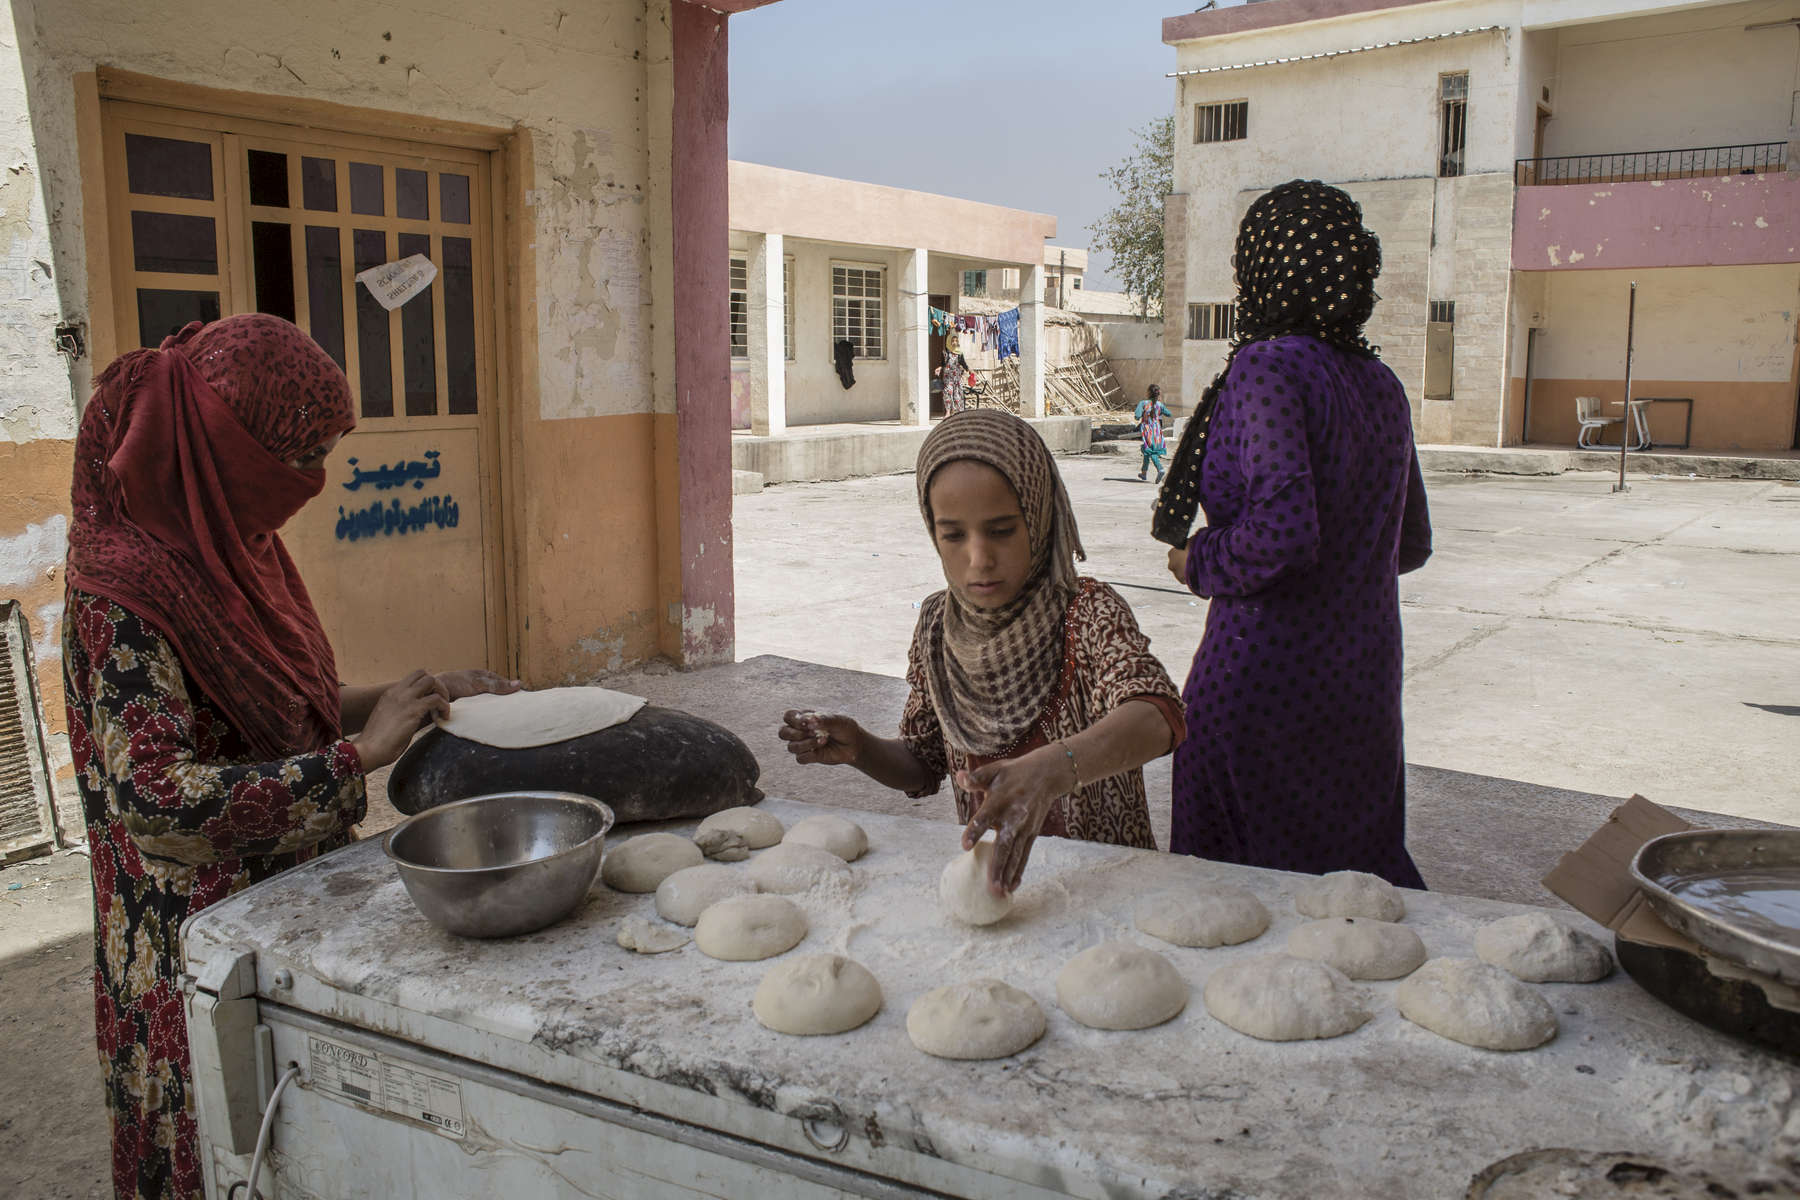 02/09/2016 -- Haji Ali Village, Iraq -- Iraqi women bake bread in a makeshift displacement camp in a school in Haji Ali. The UN warns that the humanitarian response to Iraq's displacement crisis is severely underfunded